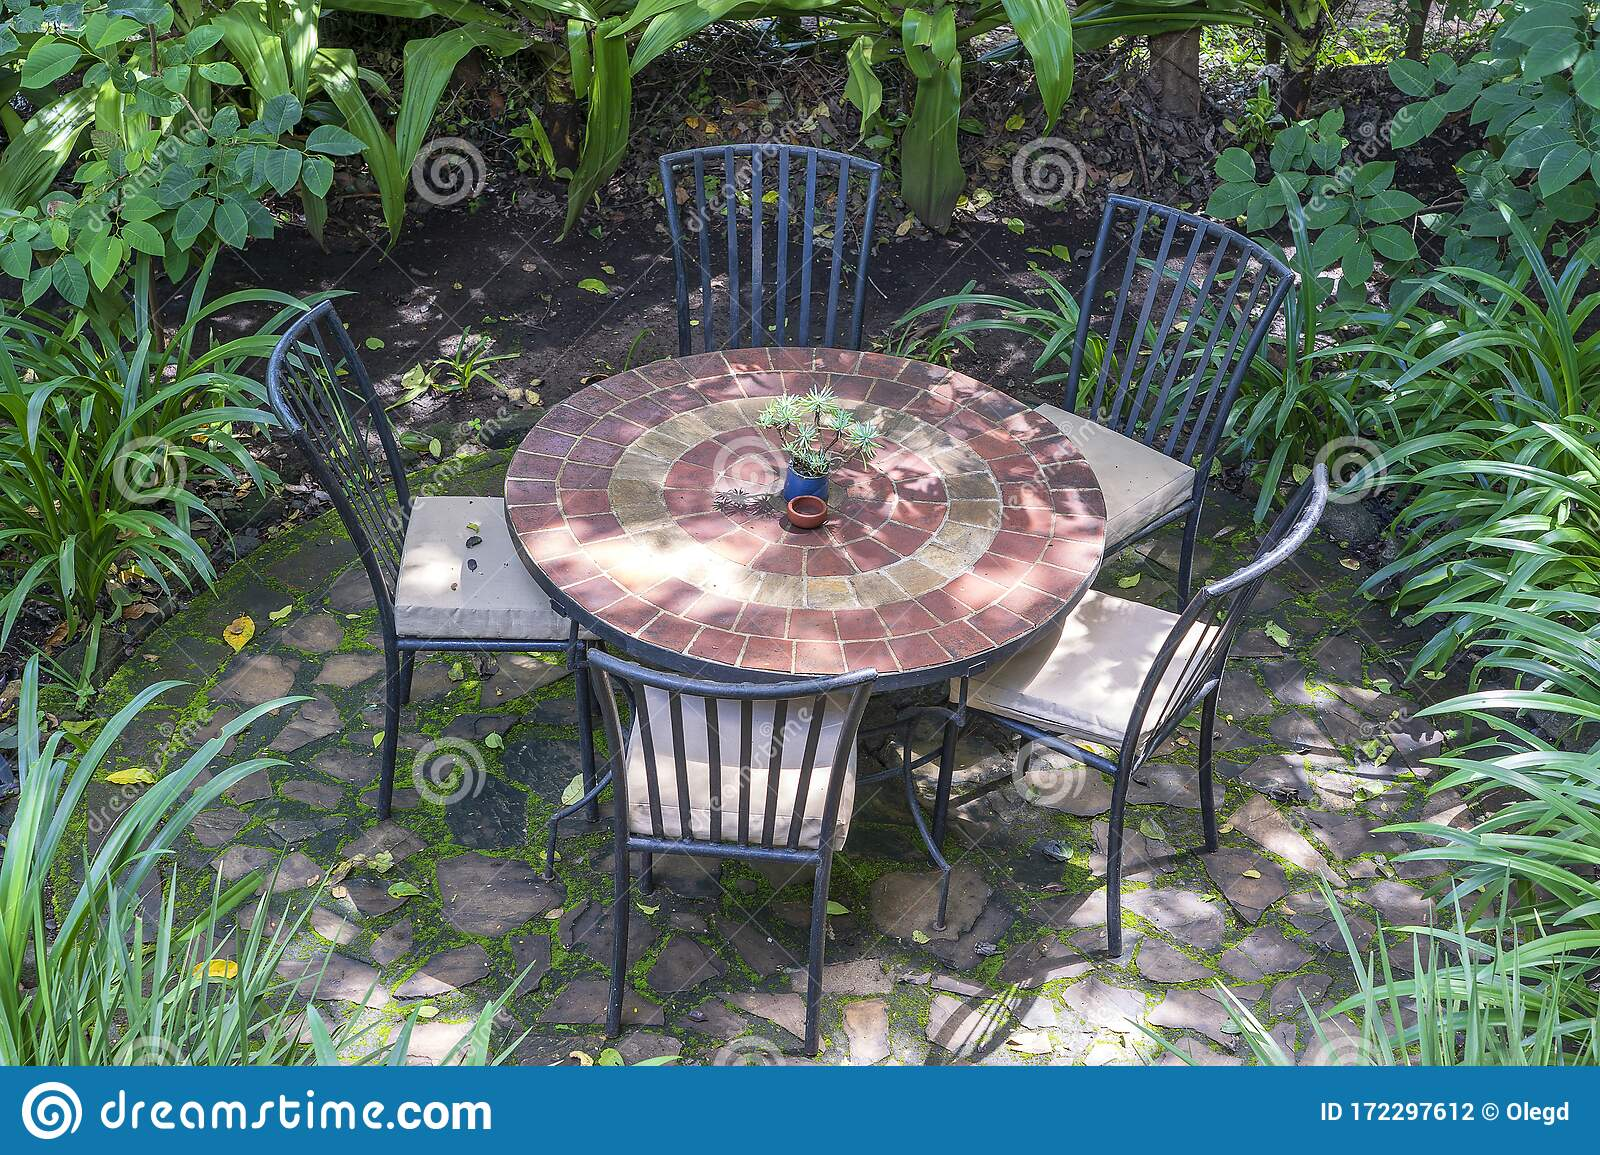 Empty Restaurant Terrace In Tropical Garden With Tables And Chairs Tanzania Africa Stock Photo Image Of Food Home 172297612